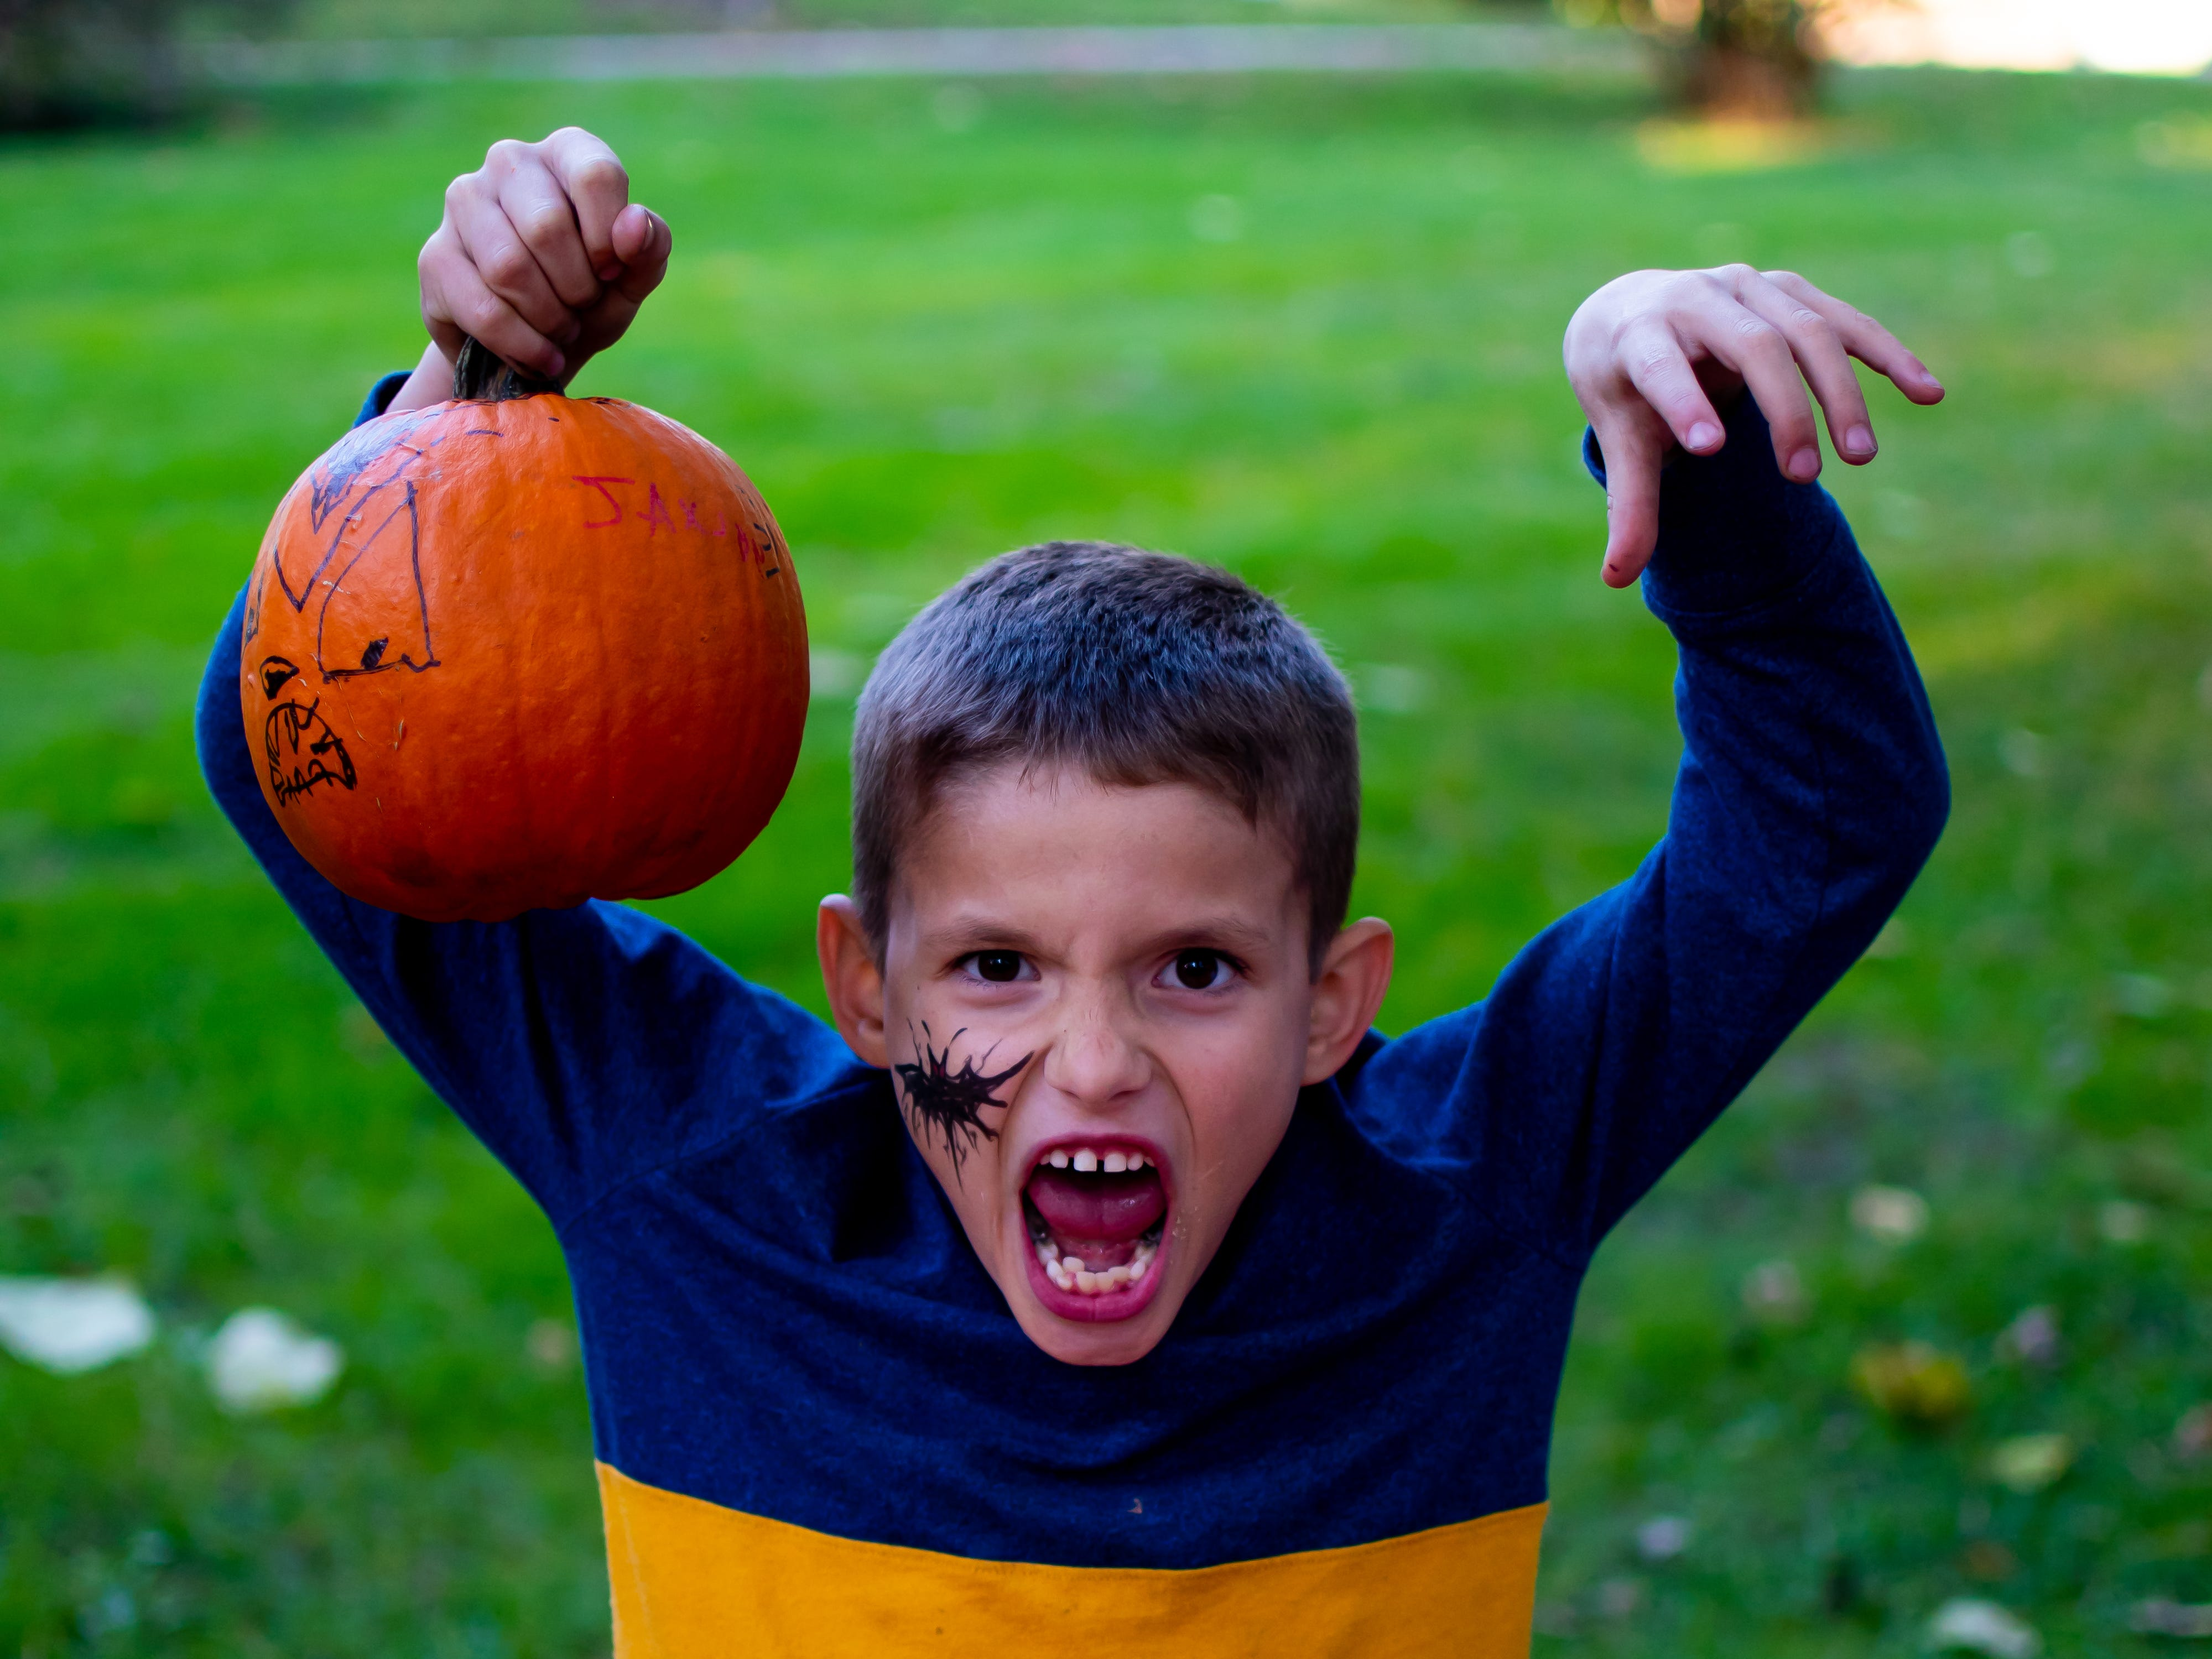 Jaxson Gibbons, 7, of West Des Moines poses with his pumpkin on Tuesday, Oct. 16, 2018 for the Waukee Area Chamber of Commerce fall after hours party at Timberline Campground in Waukee.